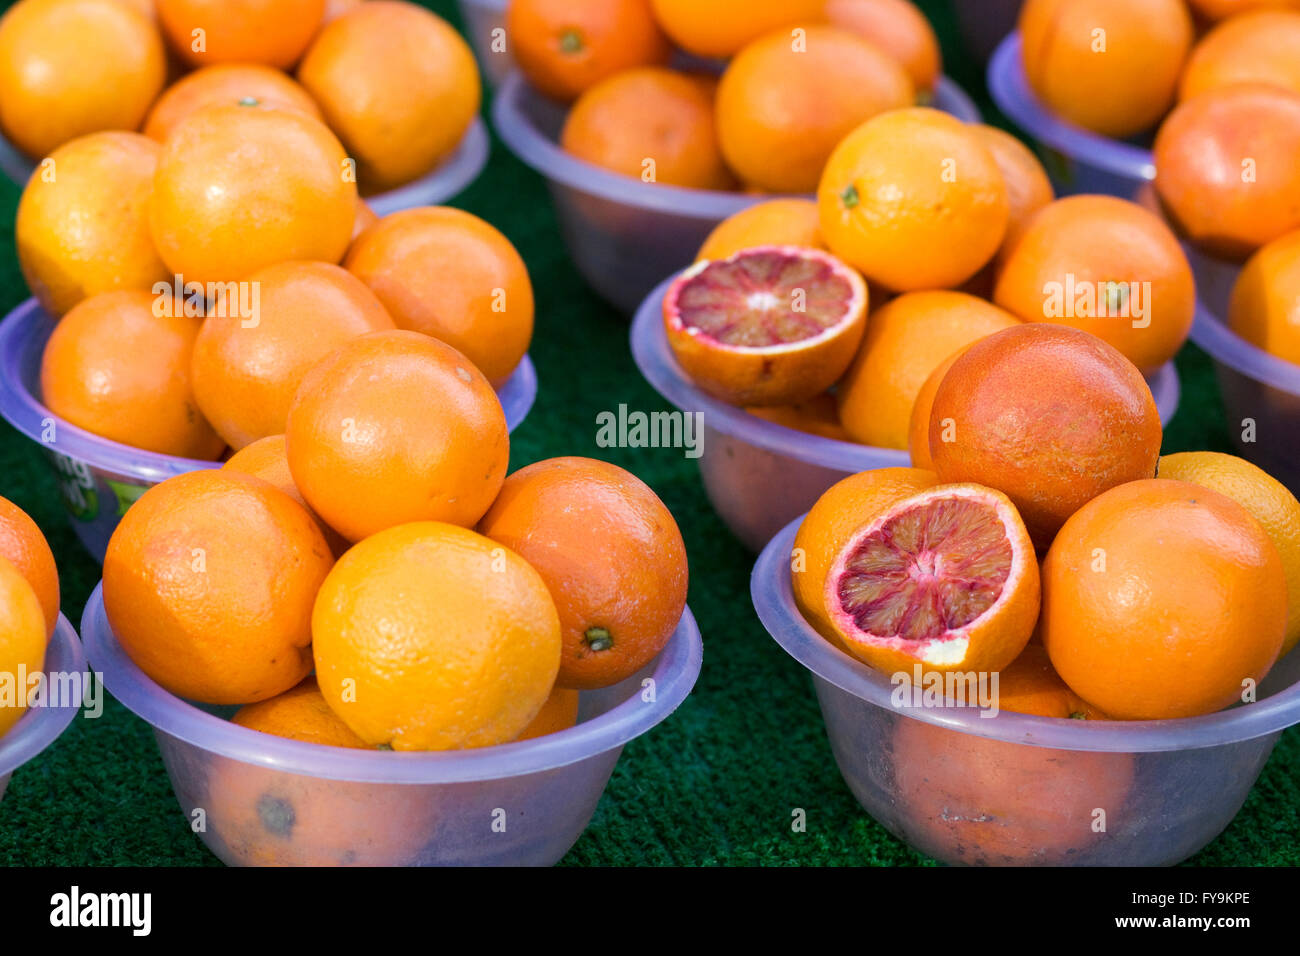 Market stall selling blood oranges in plastic bowls - Stock Image